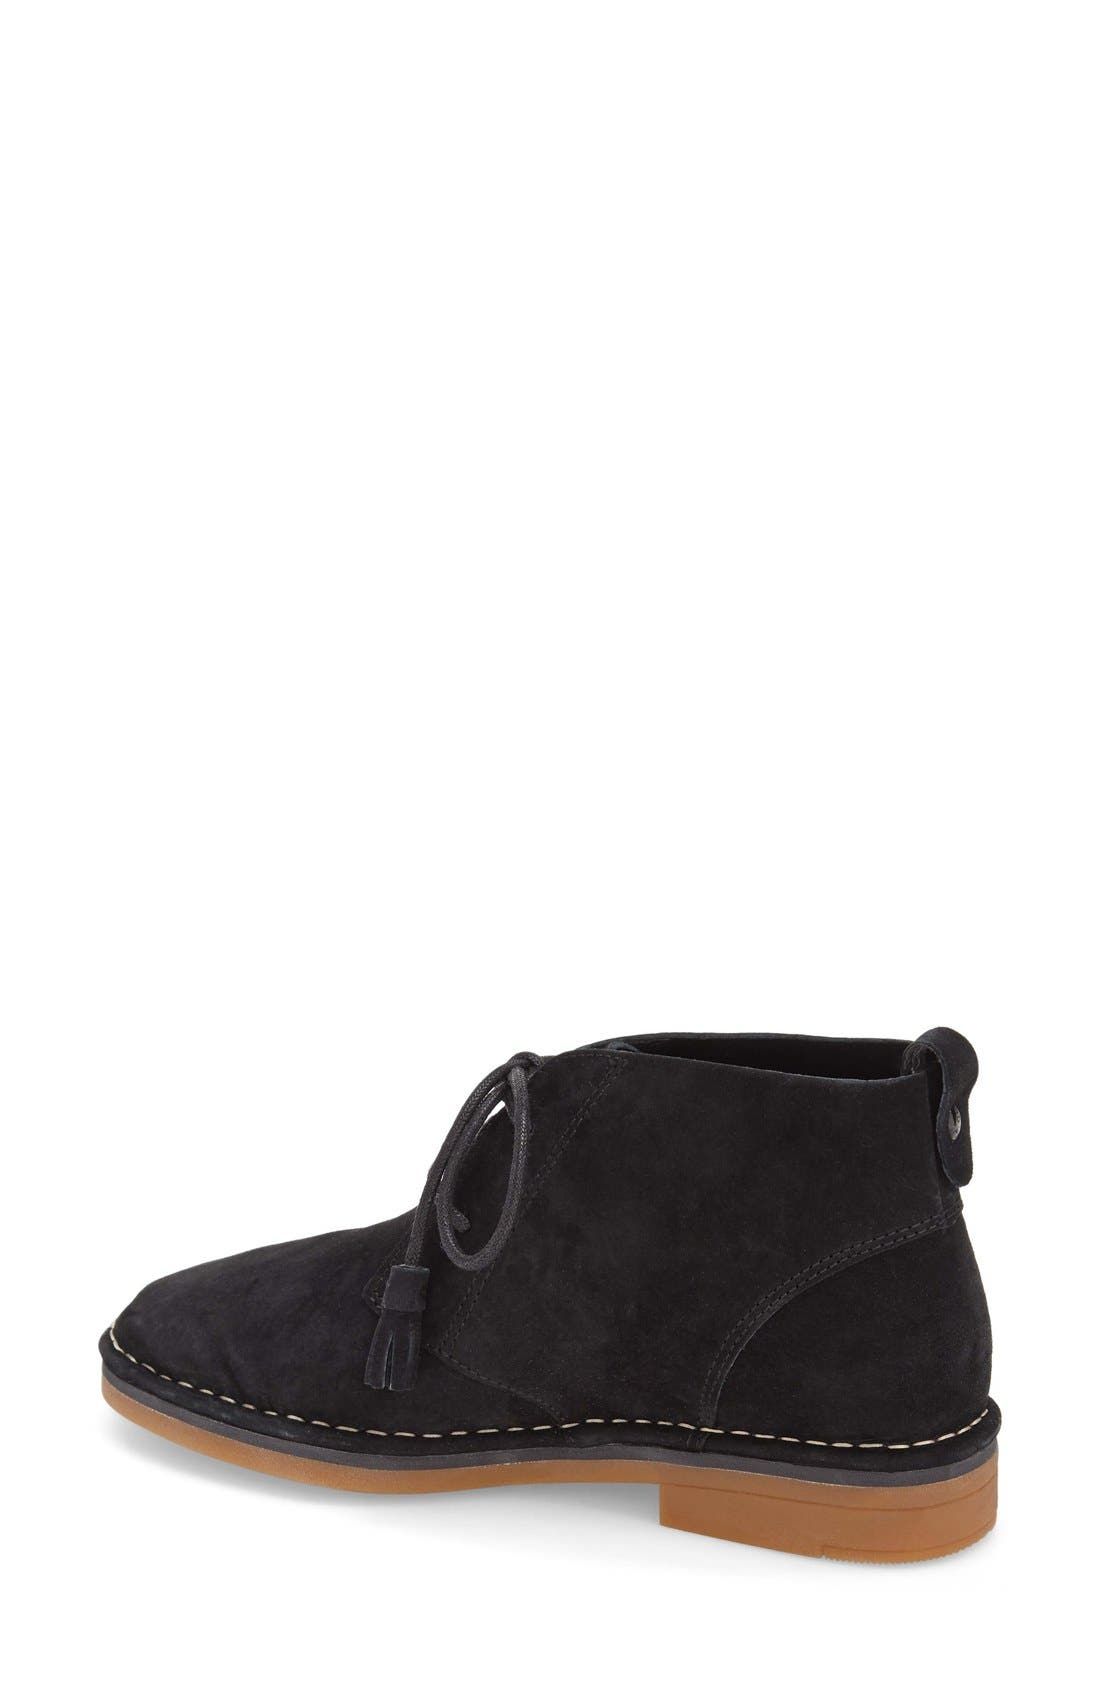 'Cyra Catelyn' Chukka Boot,                             Alternate thumbnail 3, color,                             BLACK SUEDE